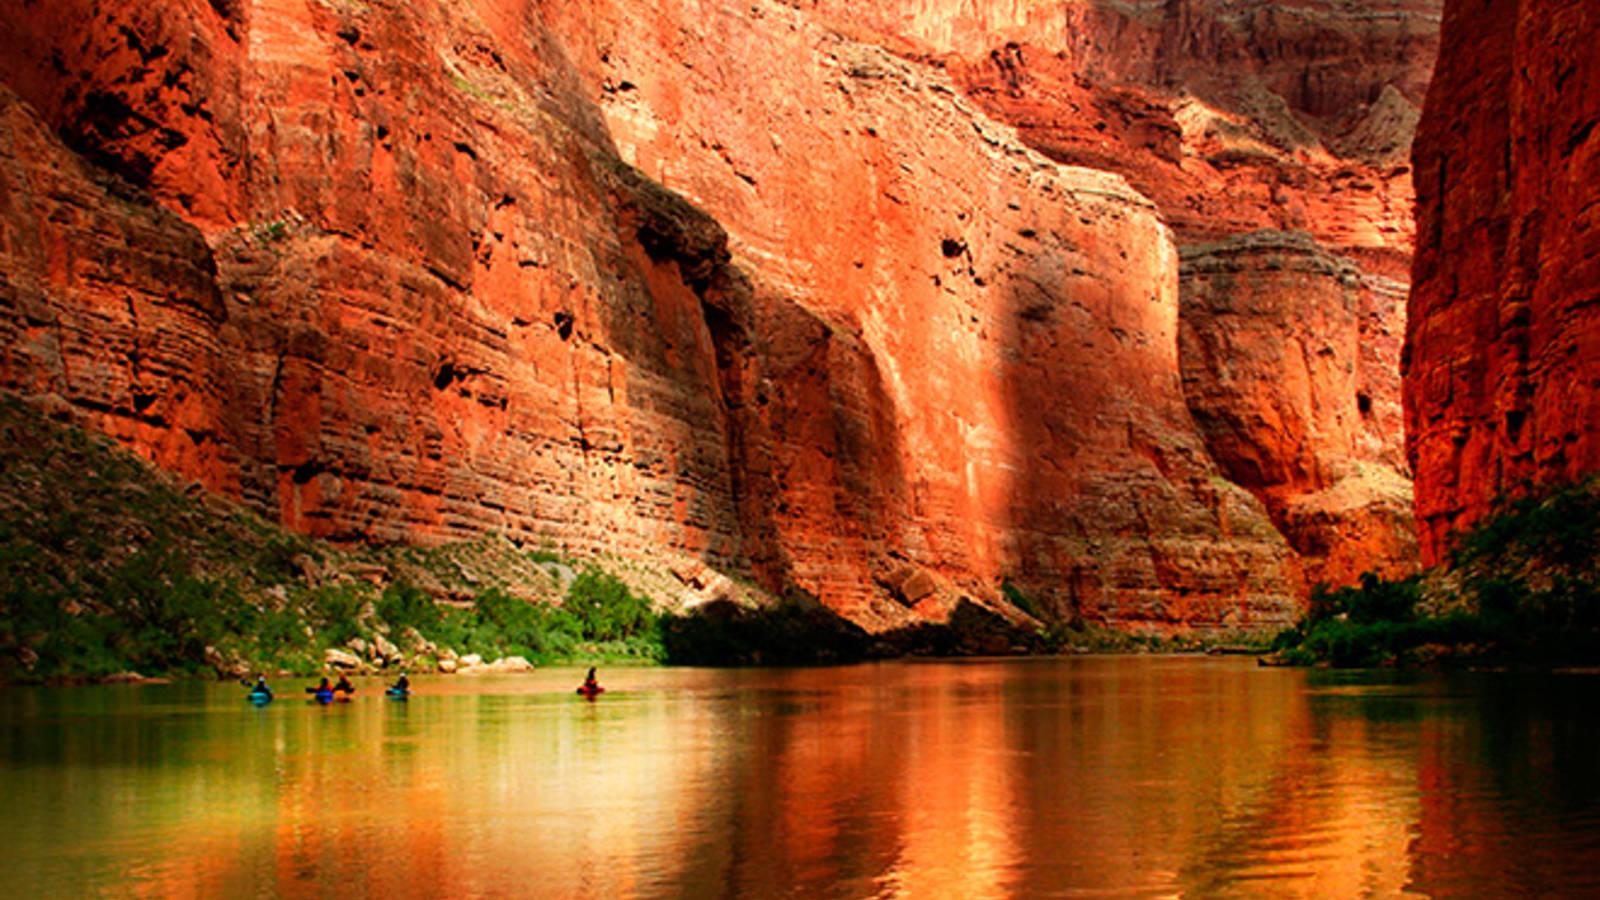 Water You Waiting For? 10 Perfect Parks for Paddling